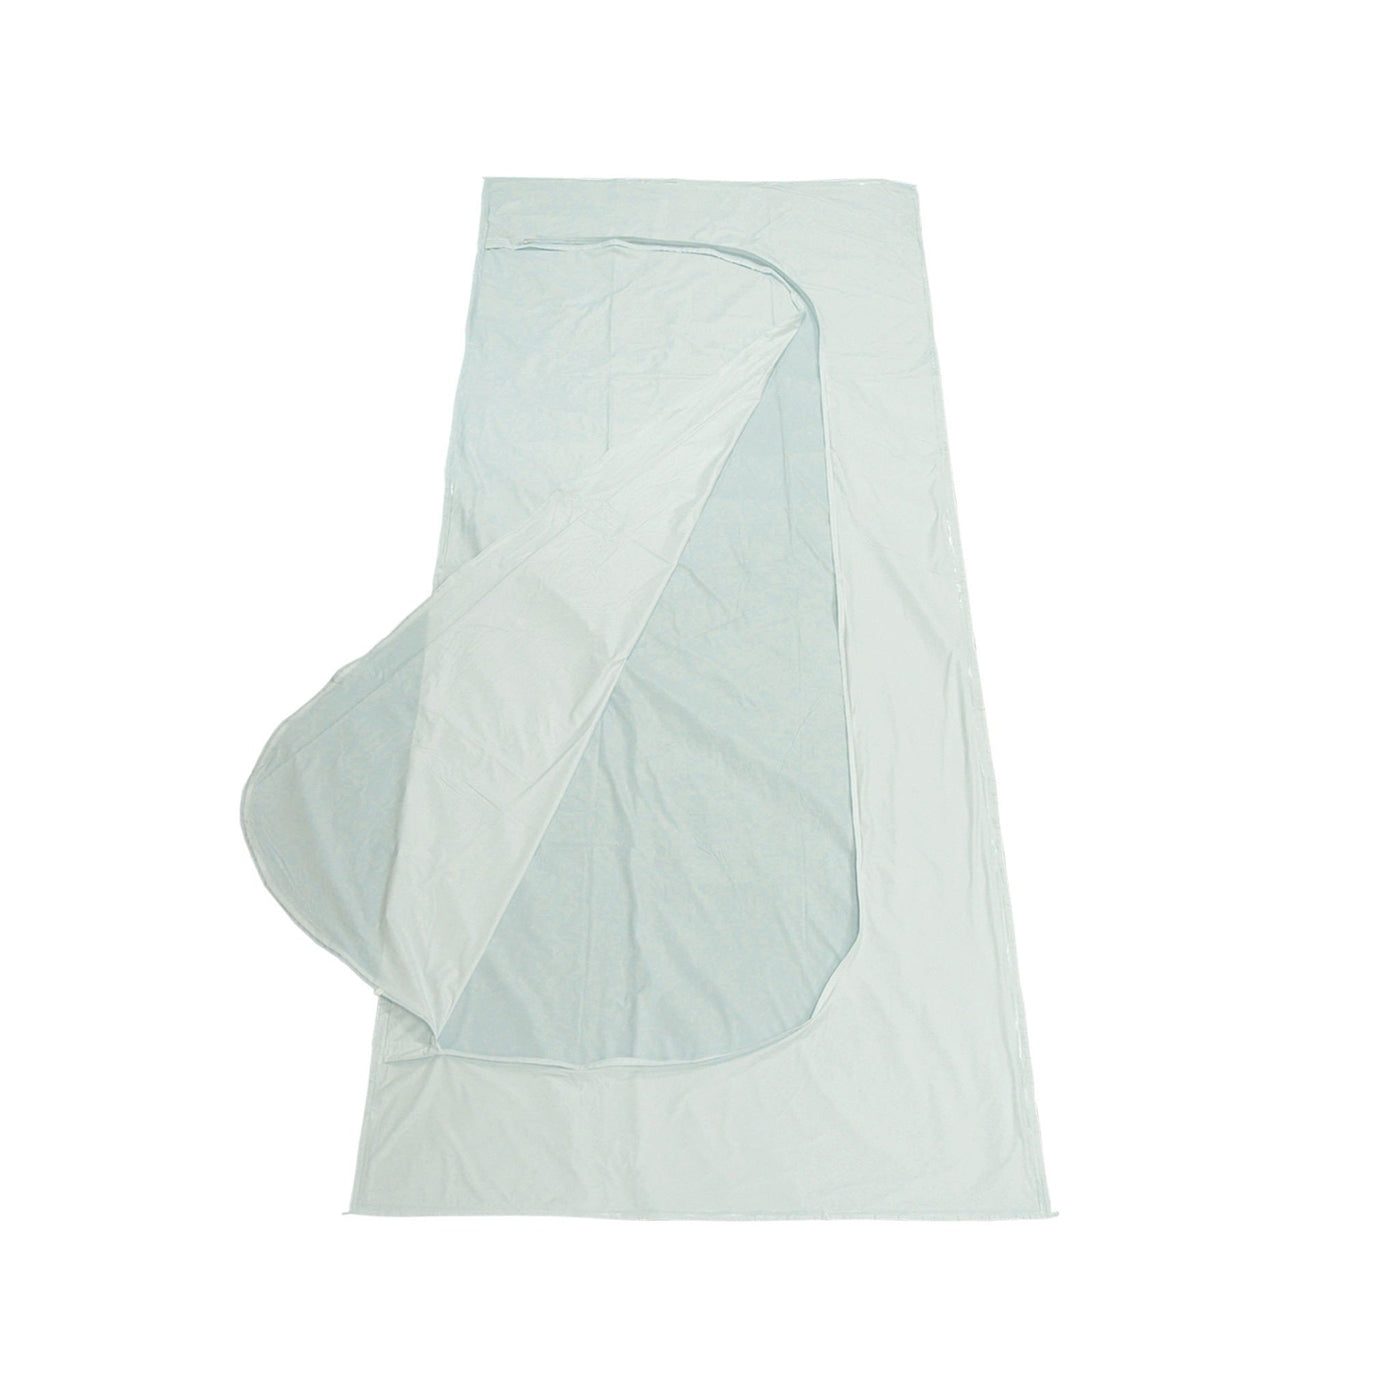 Body Bags-Laboratory Accessory-Mortech Manufacturing Company Inc. Quality Stainless Steel Autopsy, Morgue, Funeral Home, Necropsy, Veterinary / Anatomy, Dissection Equipment and Accessories